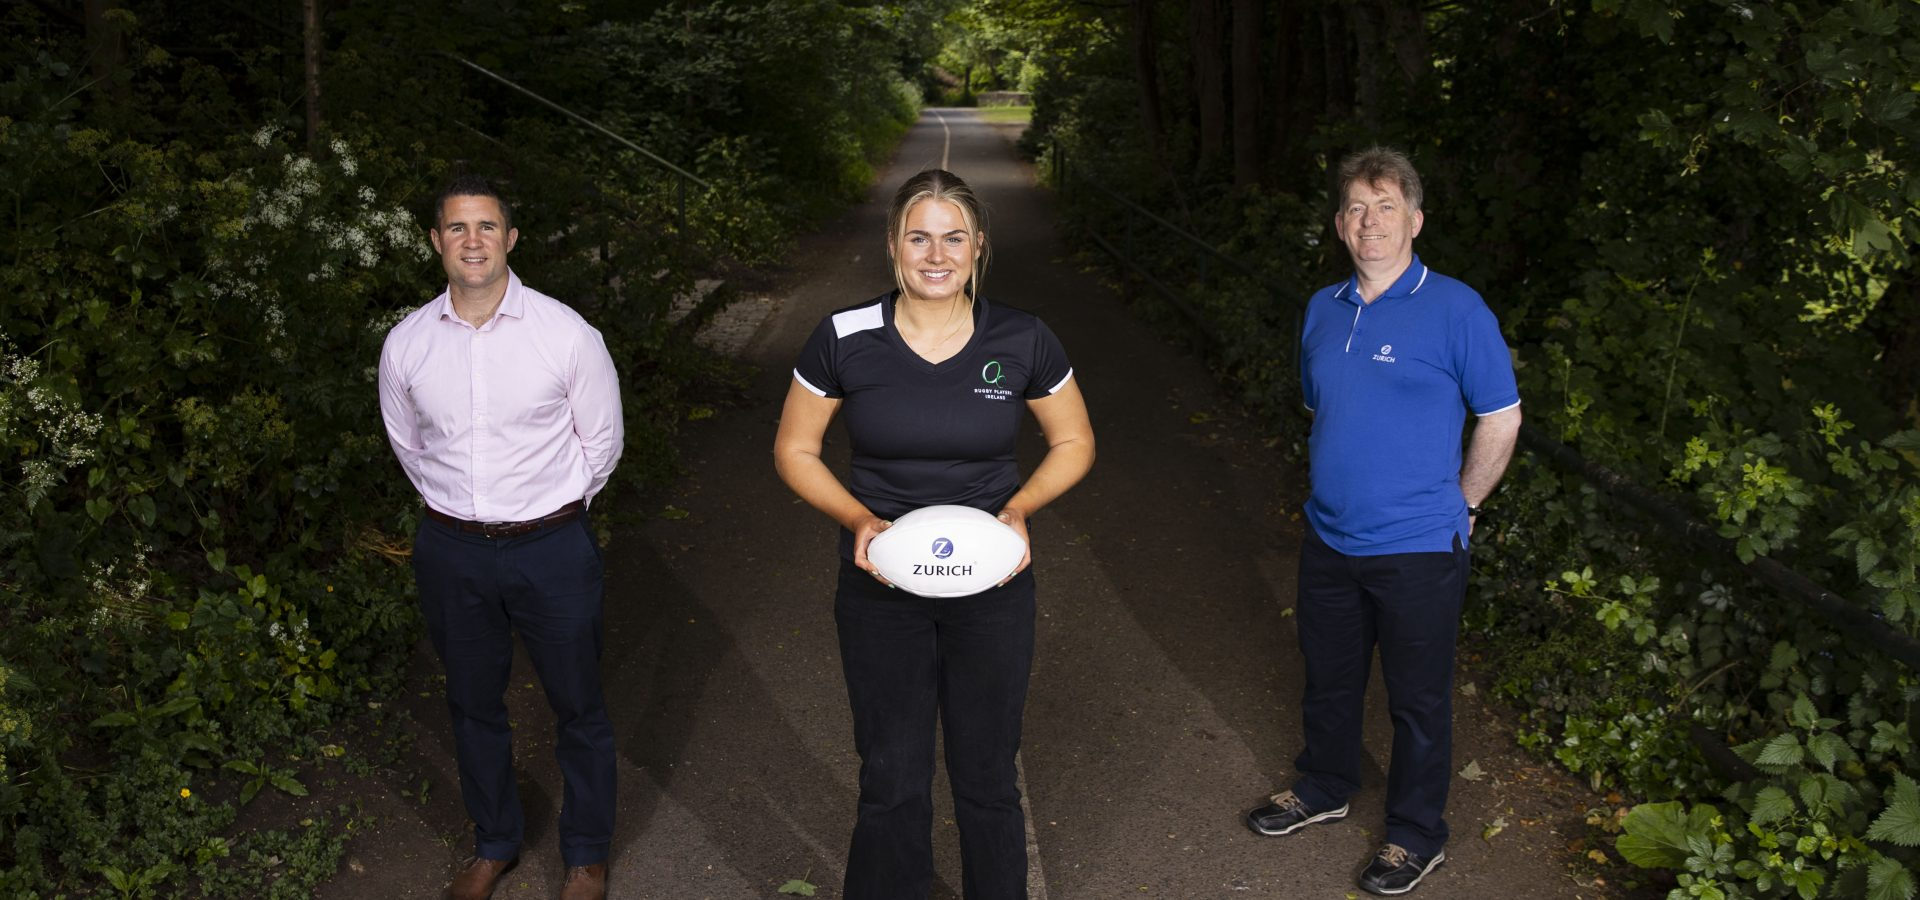 Zurich Irish Players' Player of the Year Nominees for 2020/21 announced